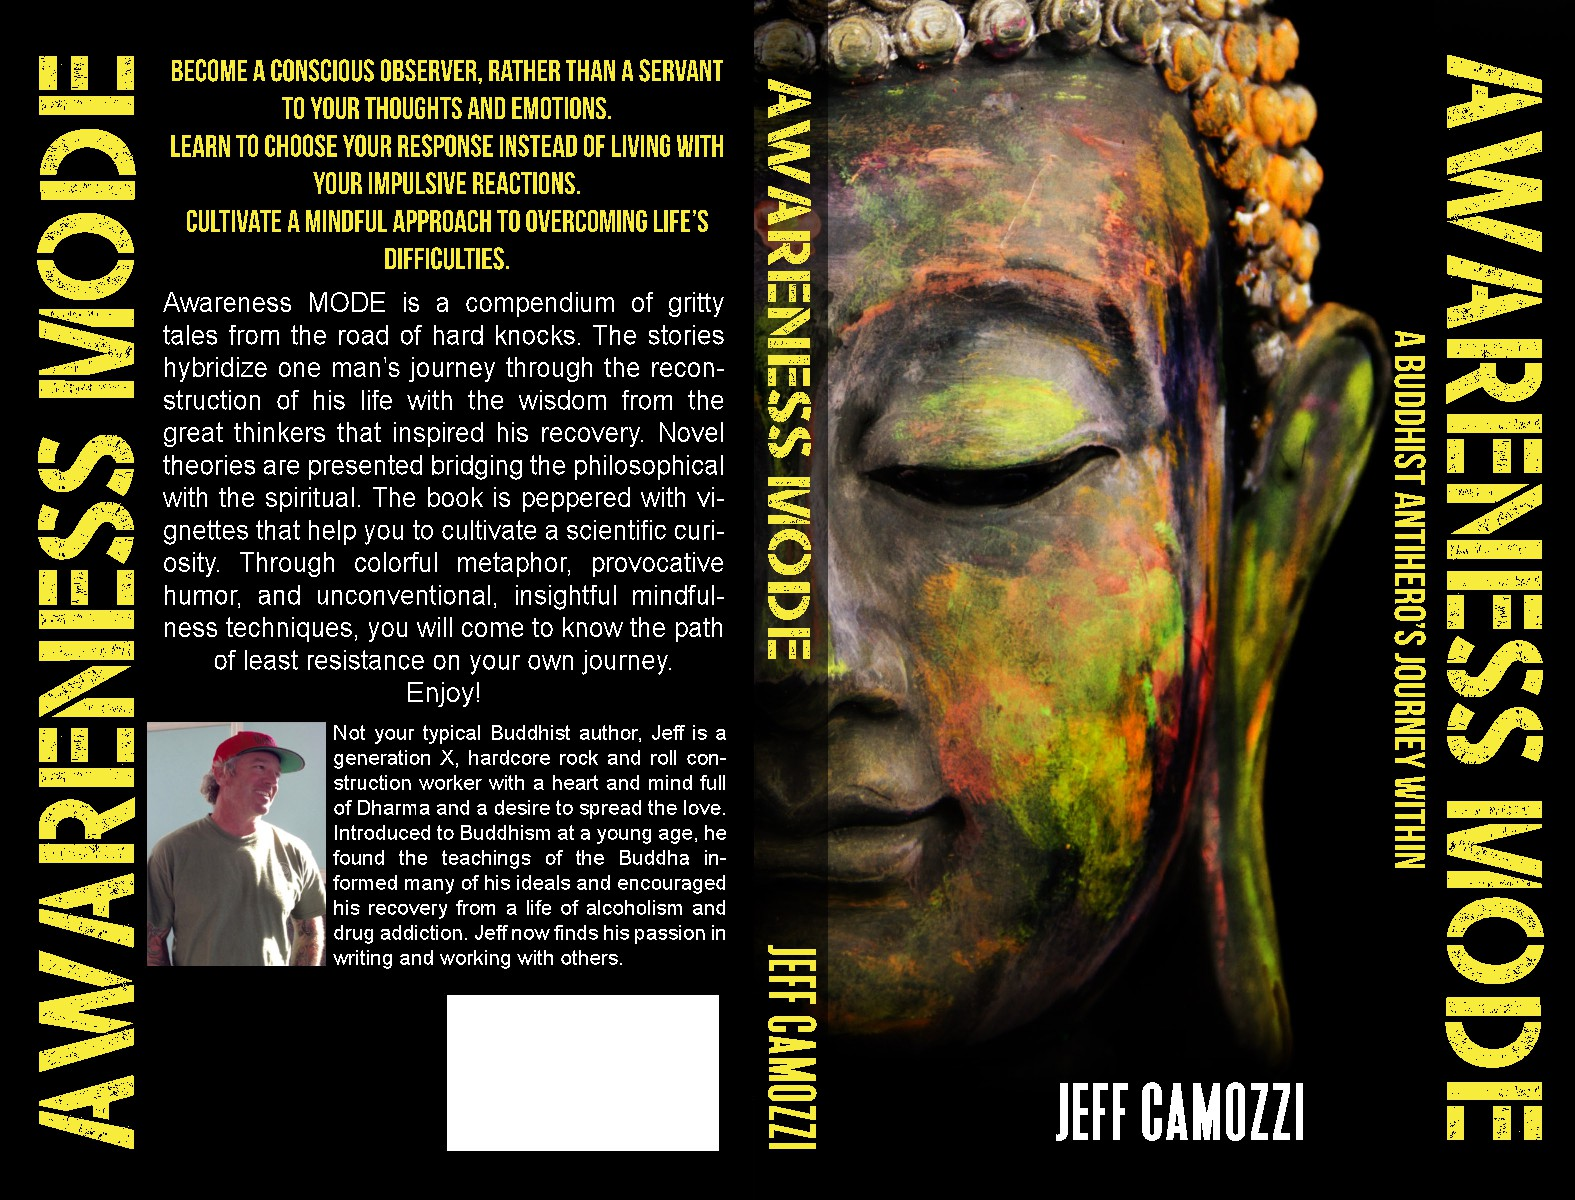 Create a bestselling book cover for revolutionary personal growth guide: Awareness M.O.D.E.